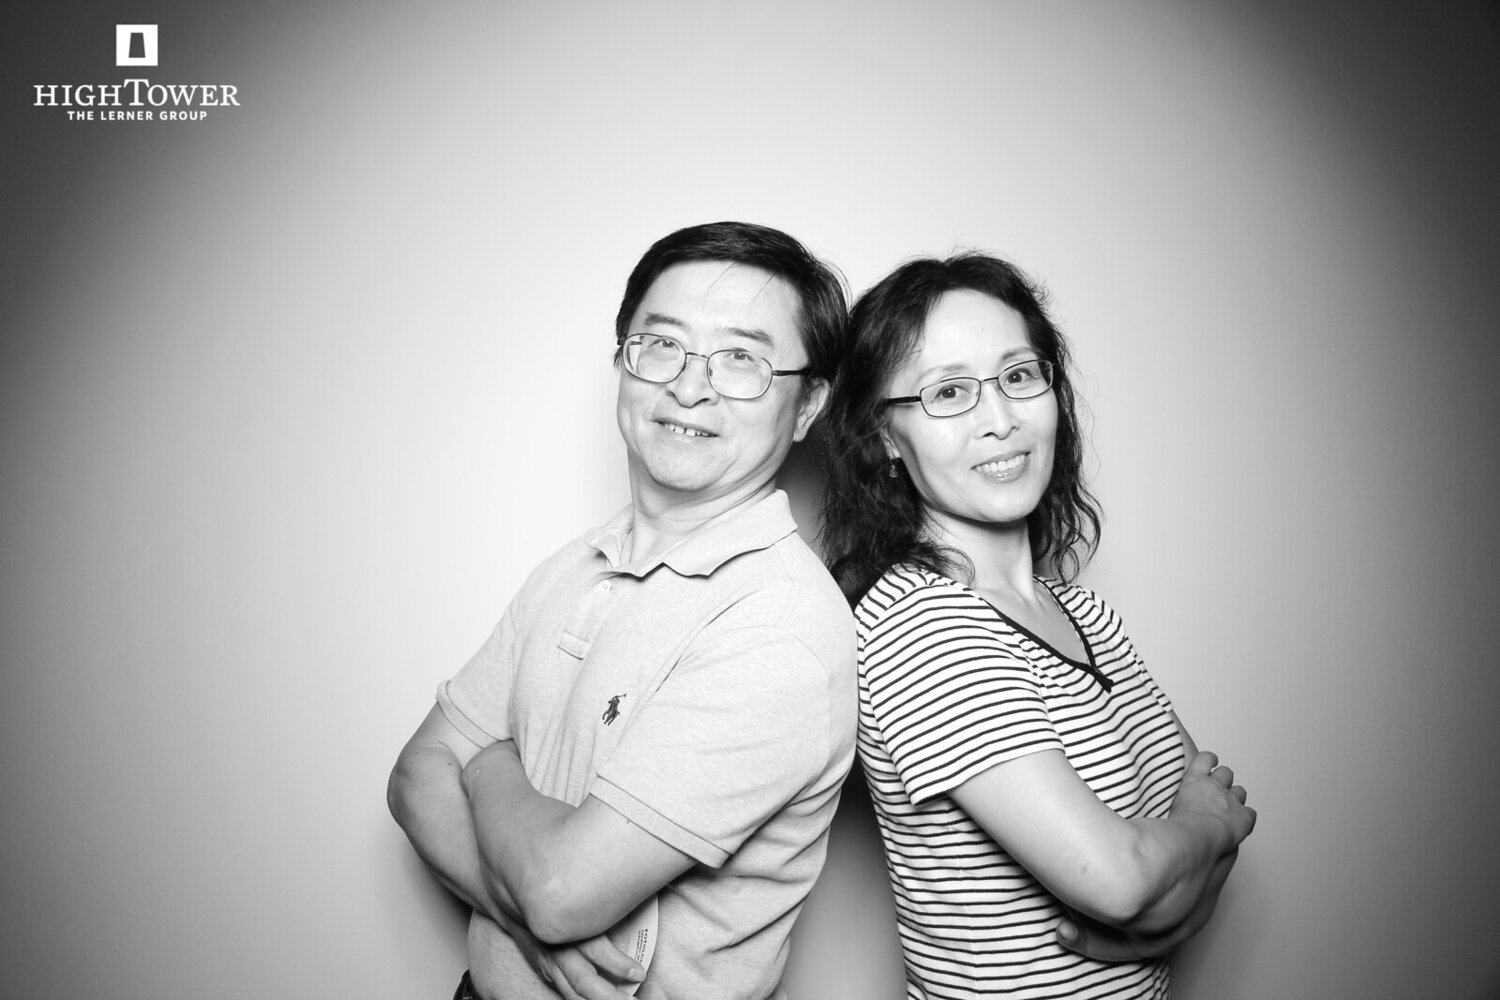 Chicago_Vintage_Wedding_Photobooth_Company_Party_09.jpg